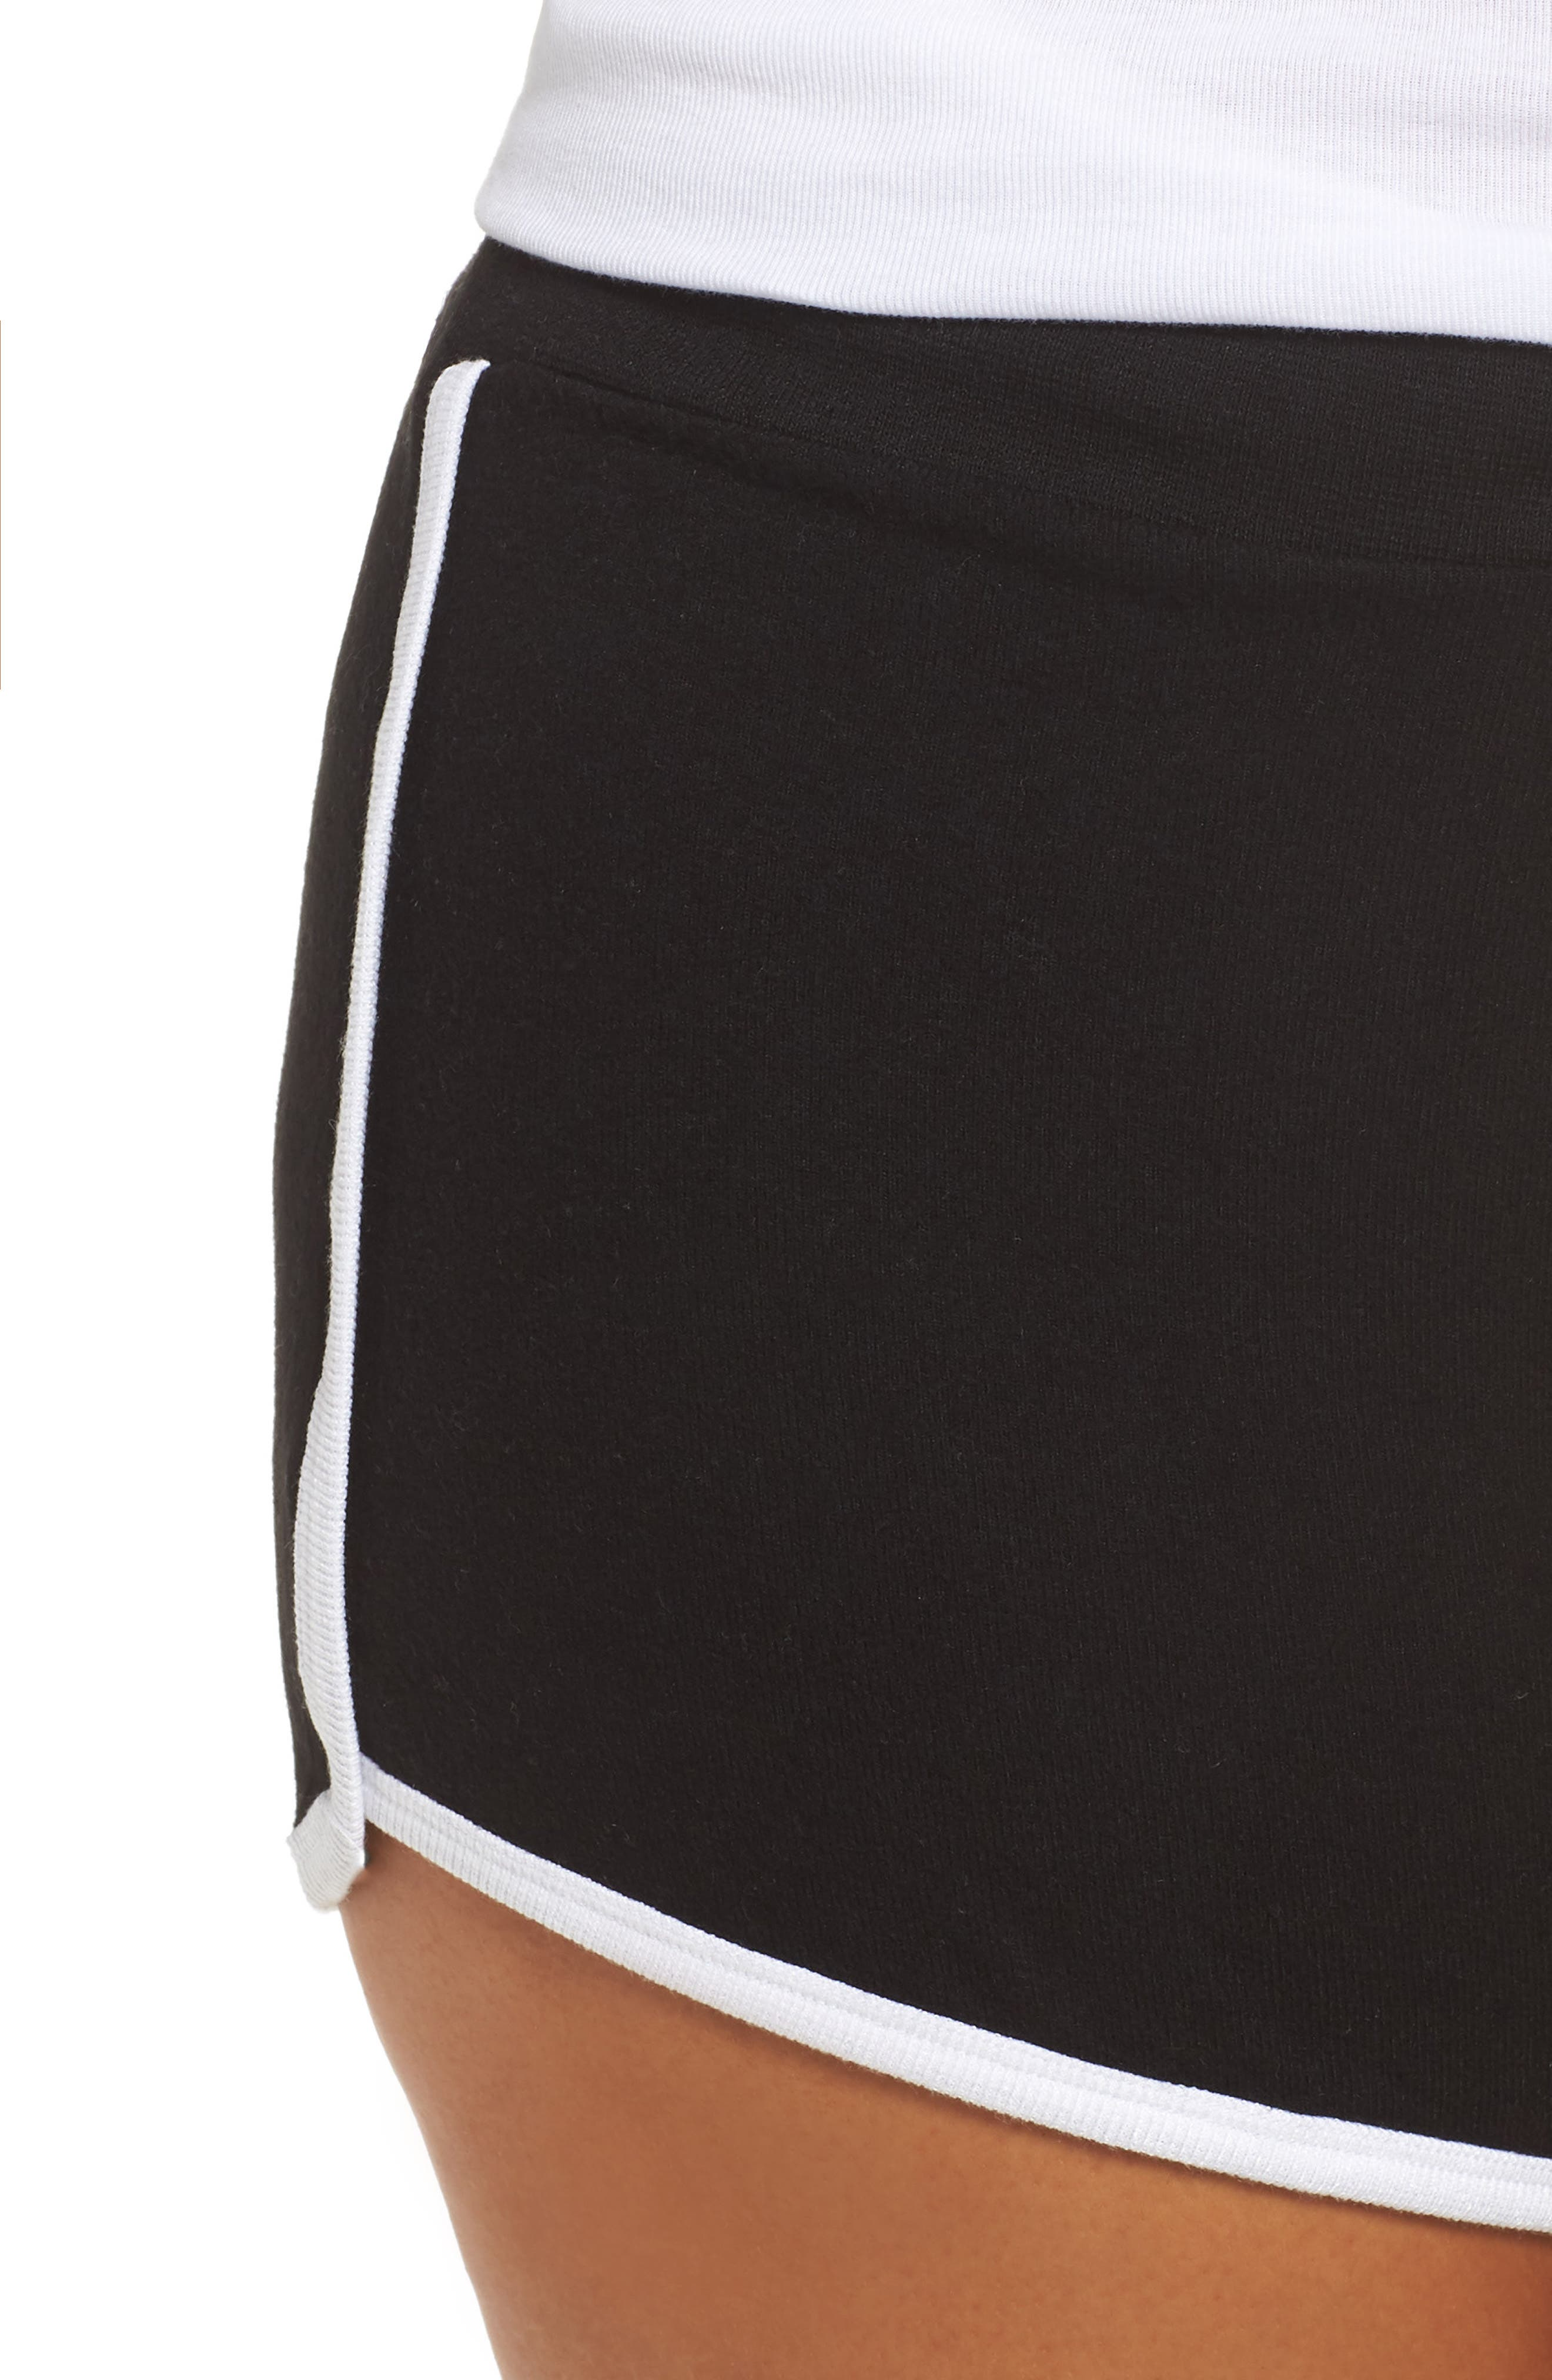 Too Cool Shorts,                             Alternate thumbnail 11, color,                             001